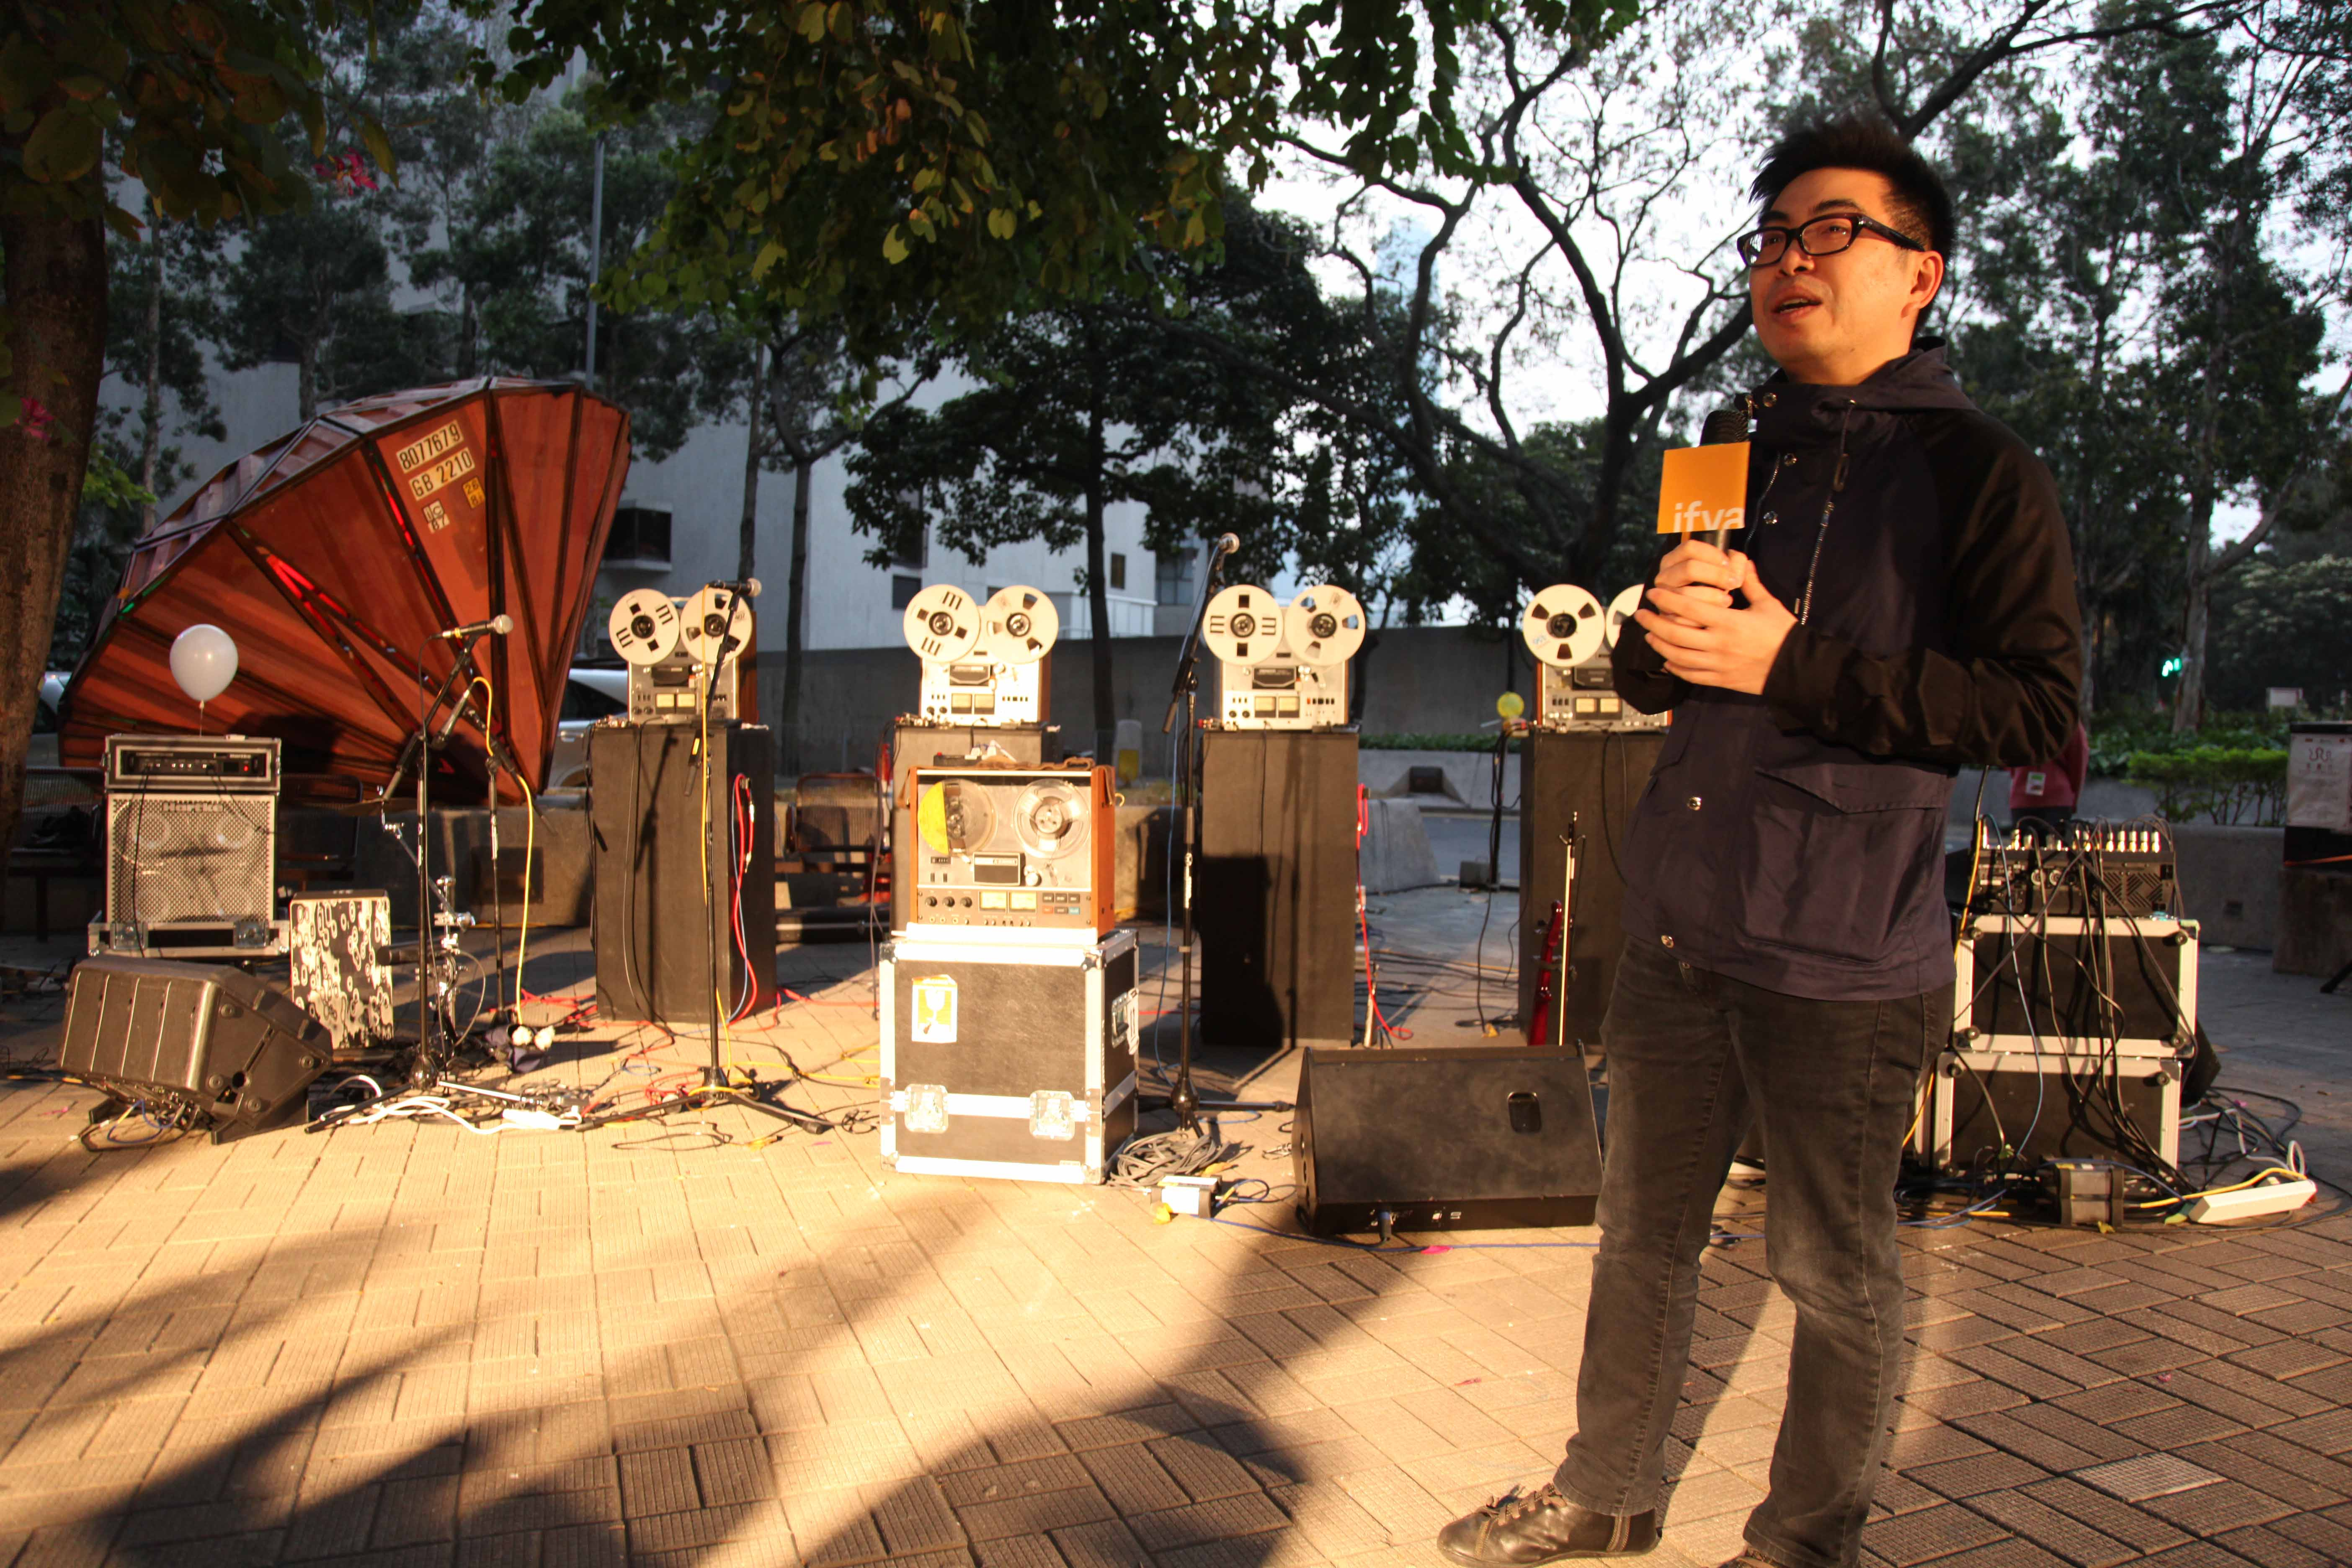 Curator Ip Yuk Yiu introduced Open Reel Ensemble and their inventive recorders